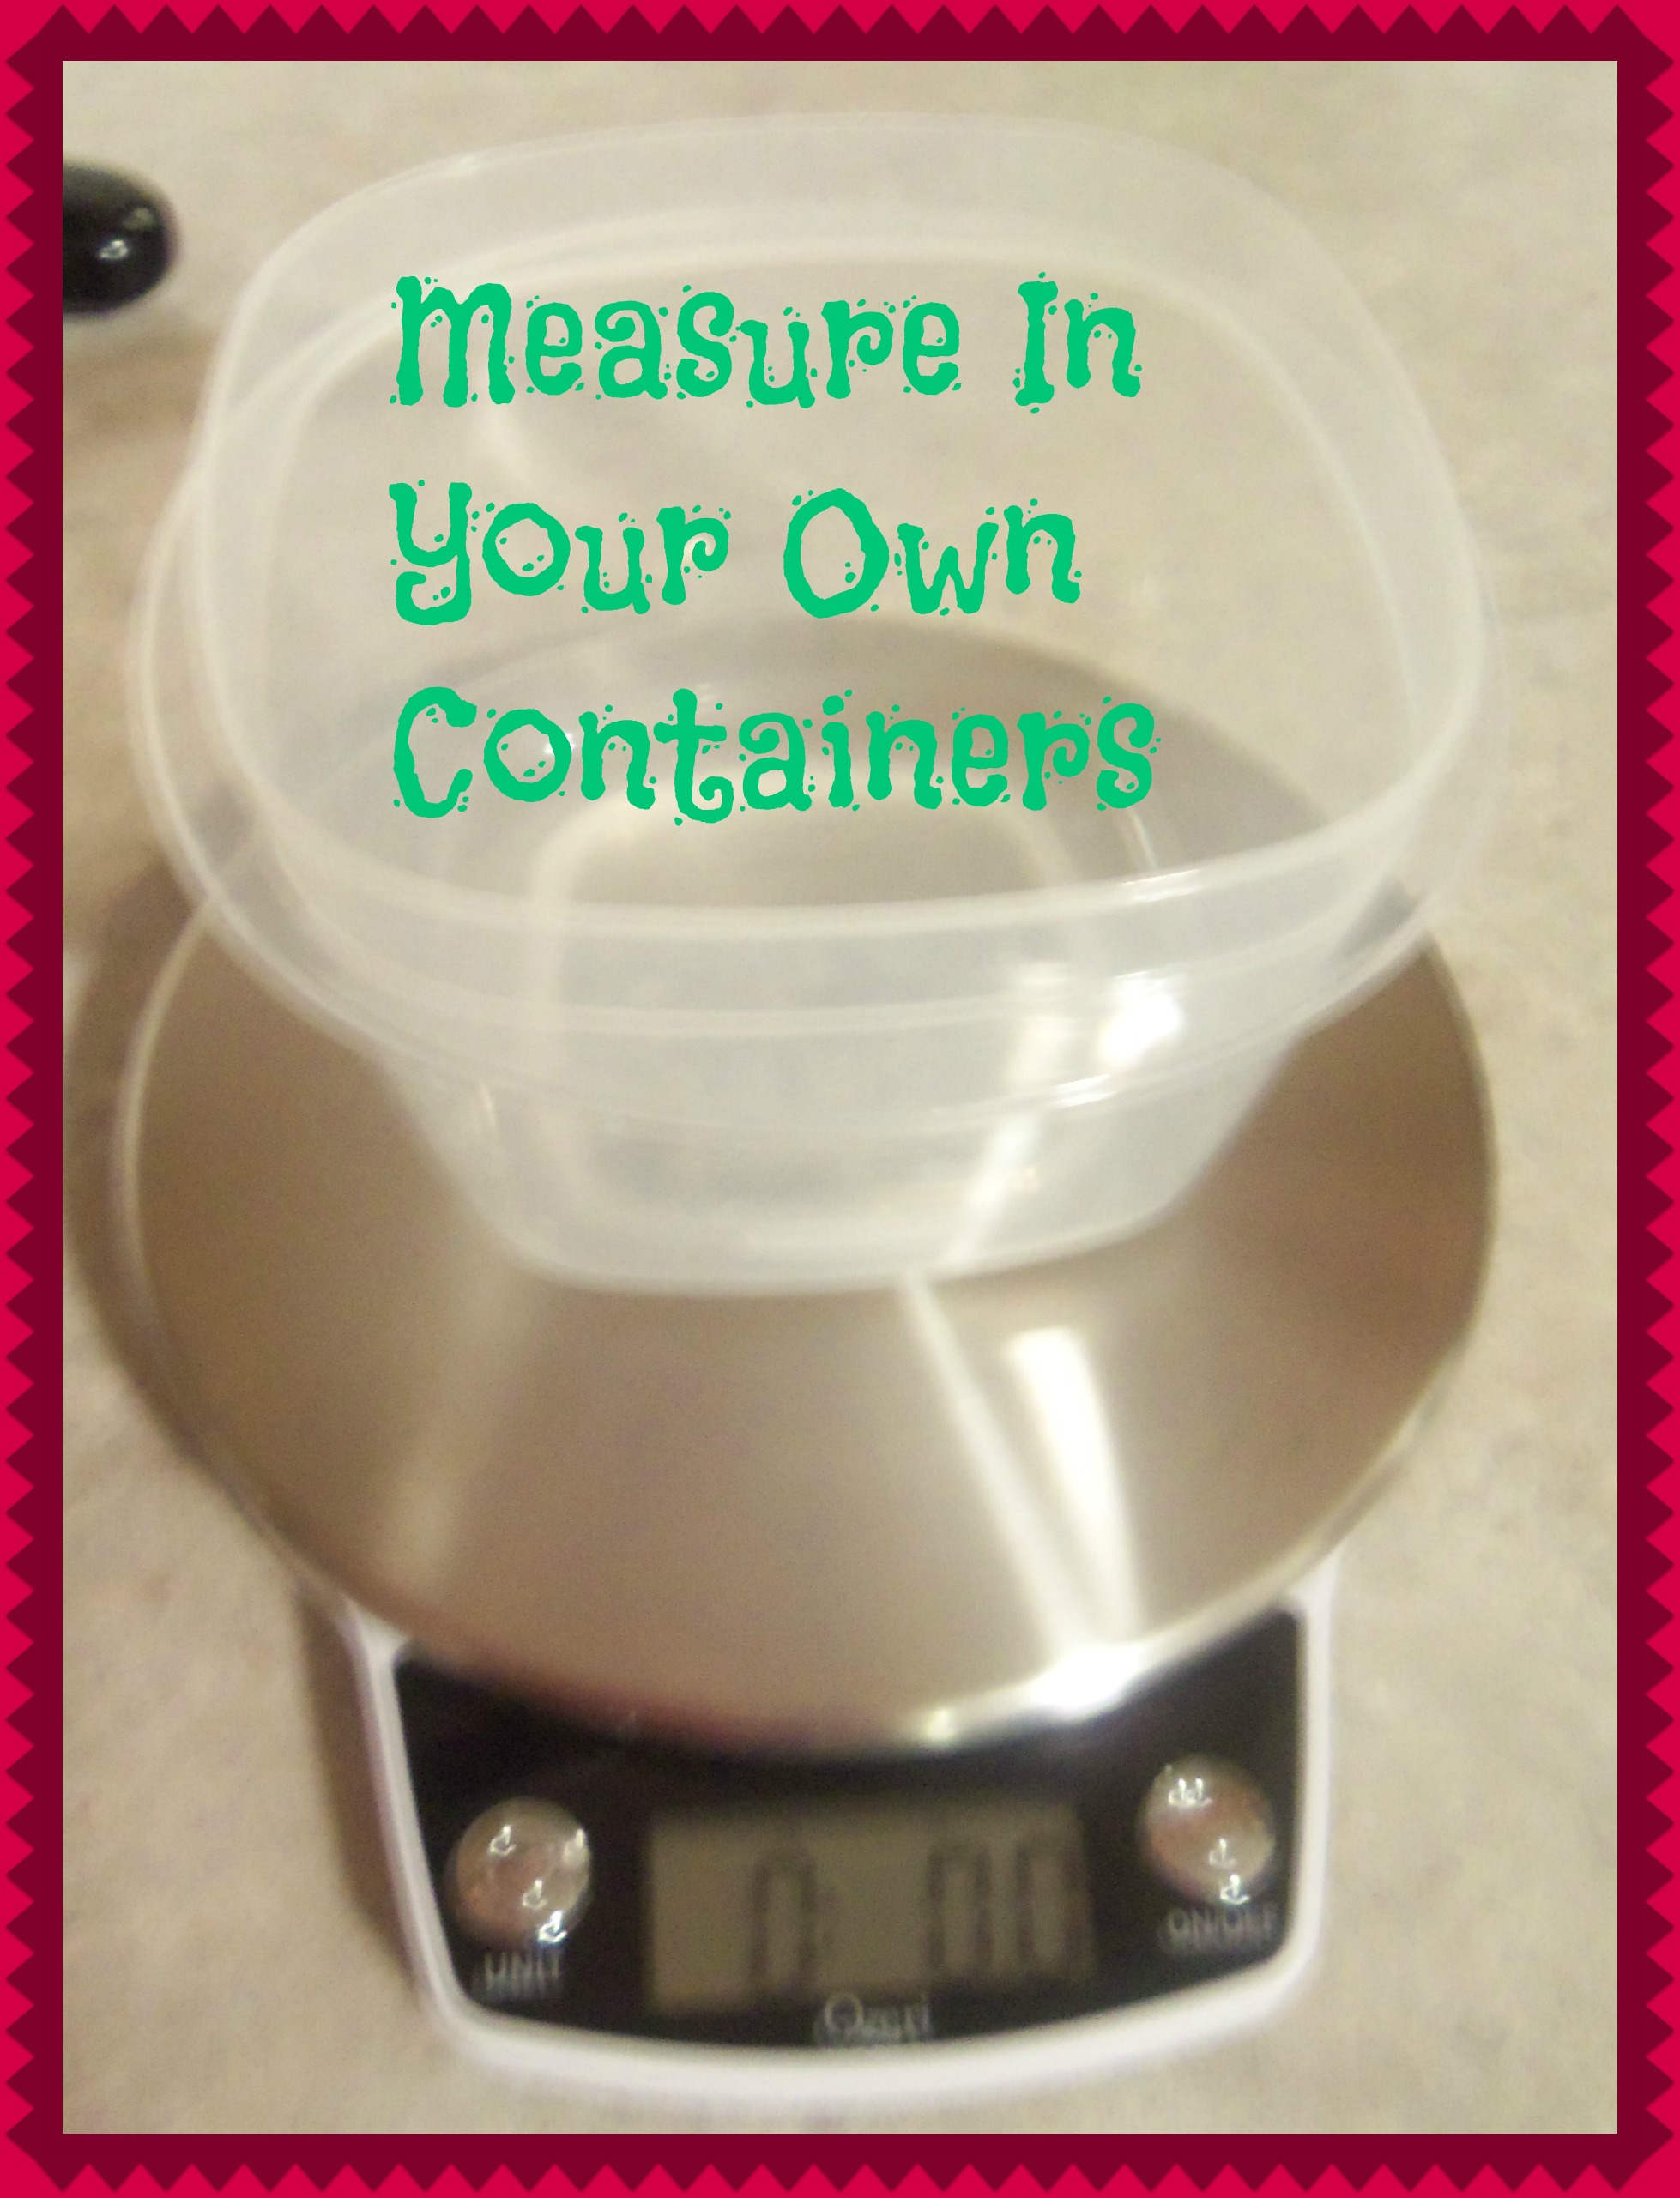 Ozeri Kitchen Scale Review and Giveaway!! Ends October 16!!